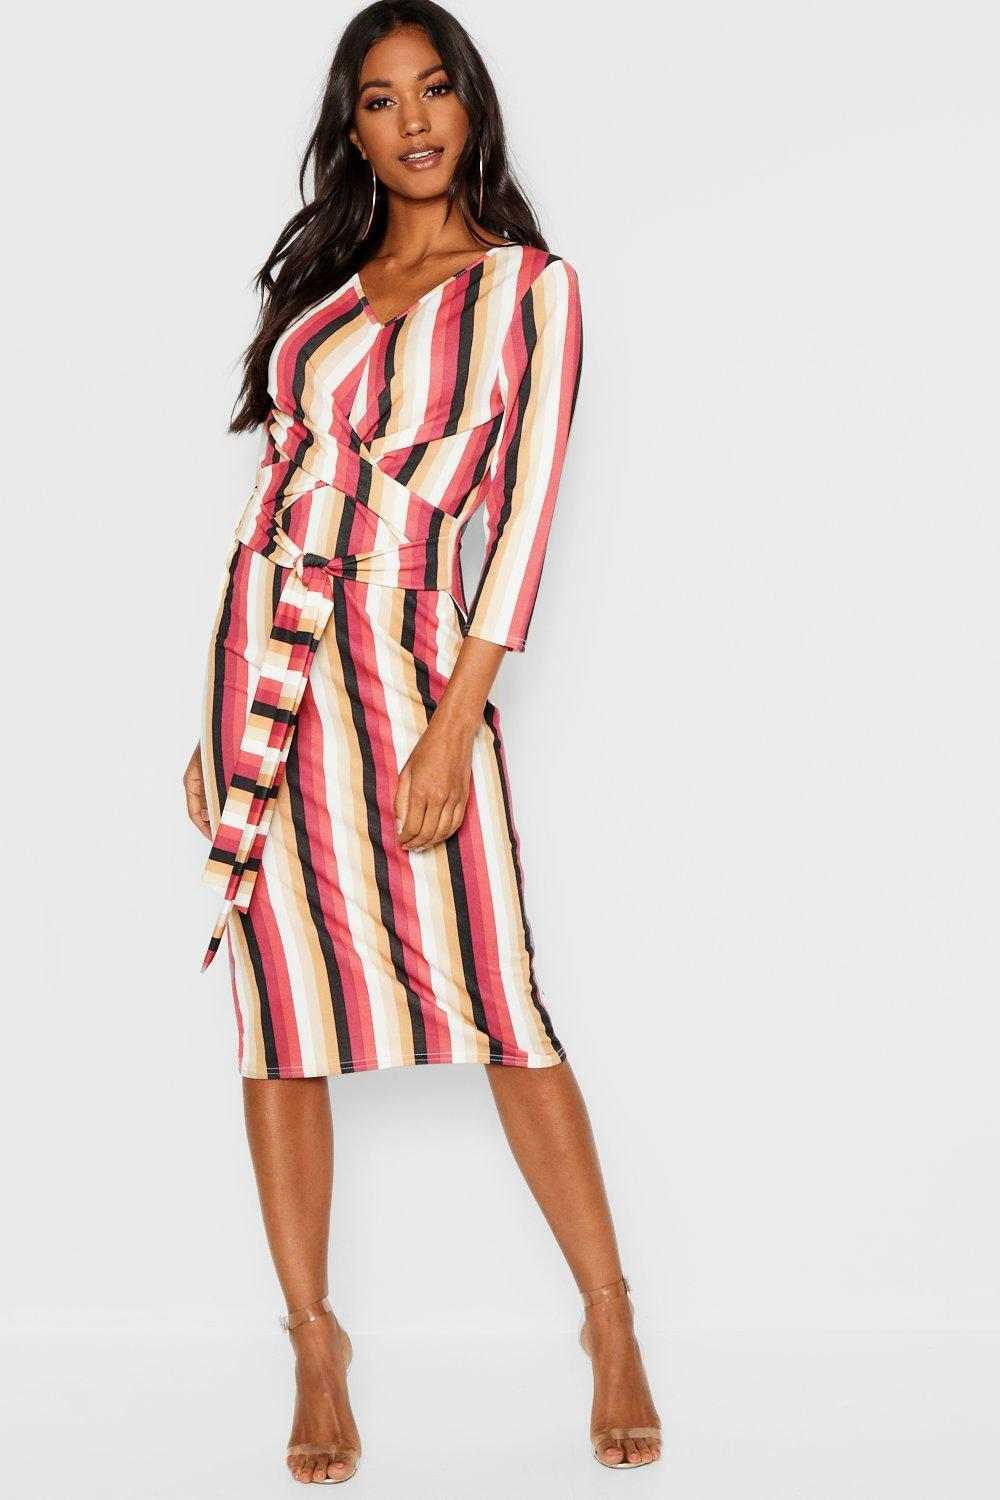 0fa9f1bfa58e Lyst - Boohoo Knot Front Striped Midi Dress in Red